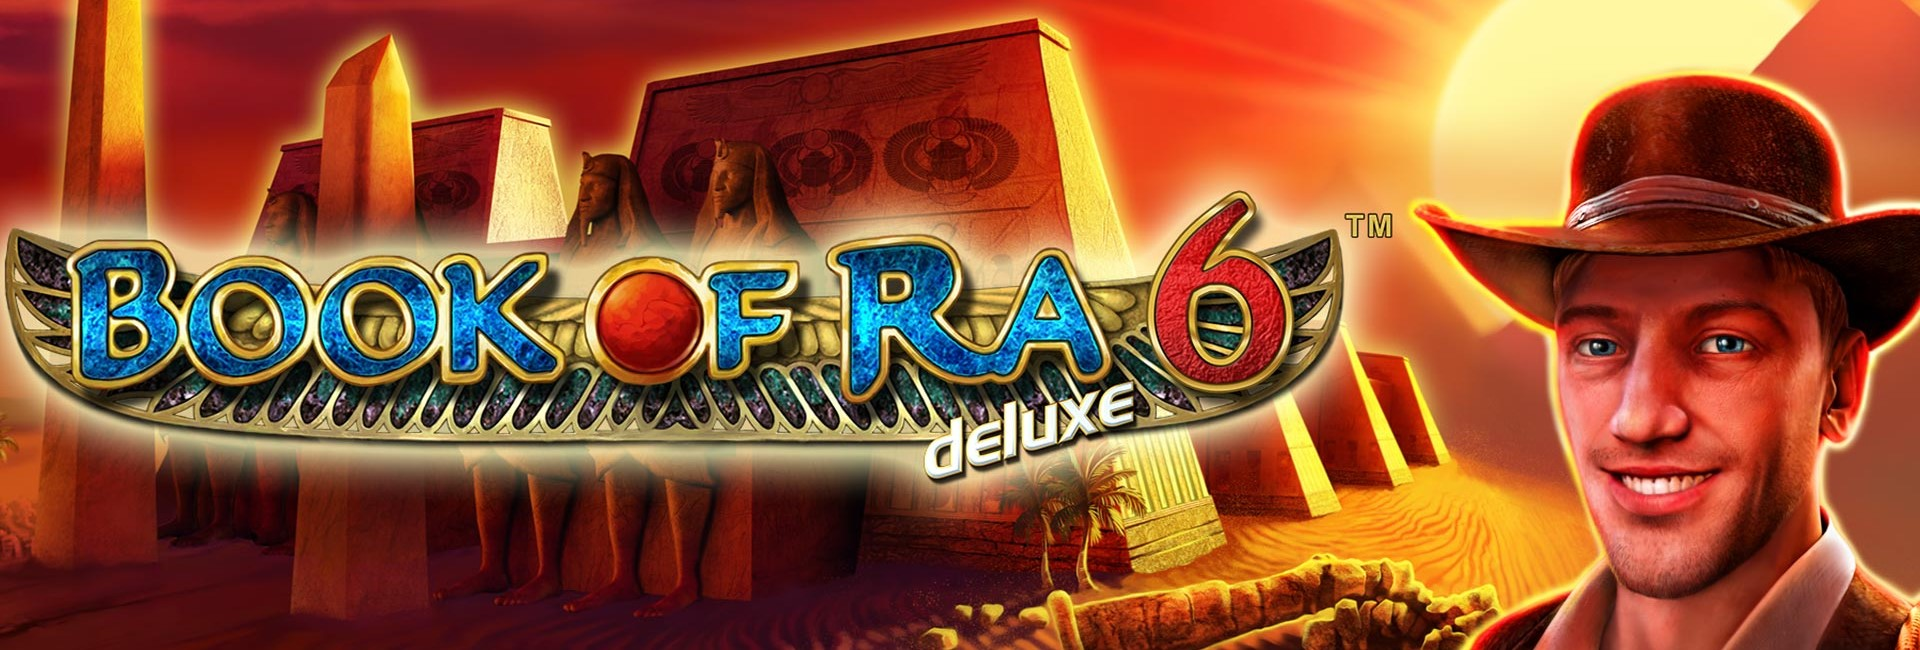 Book of Ra Slot Spiele